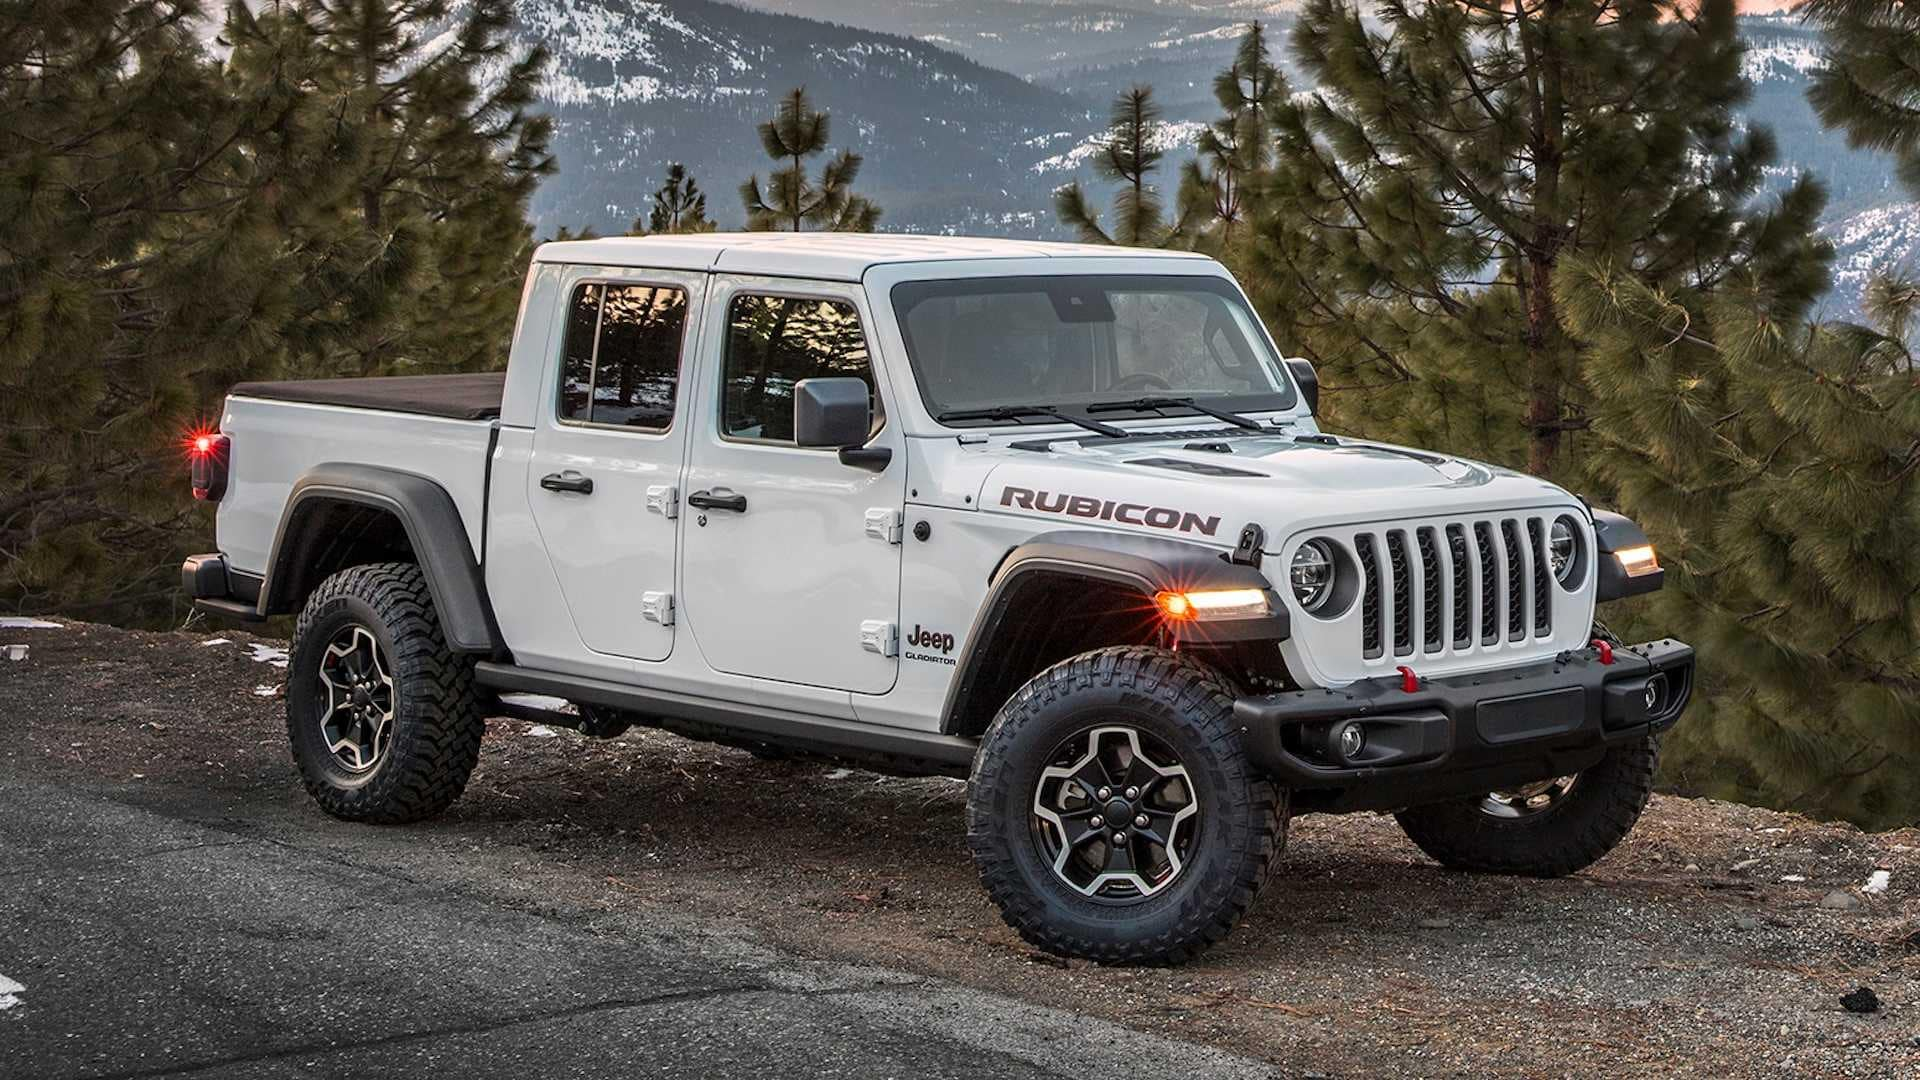 2020 Jeep Gladiator Rubicon Performance Is Powerful